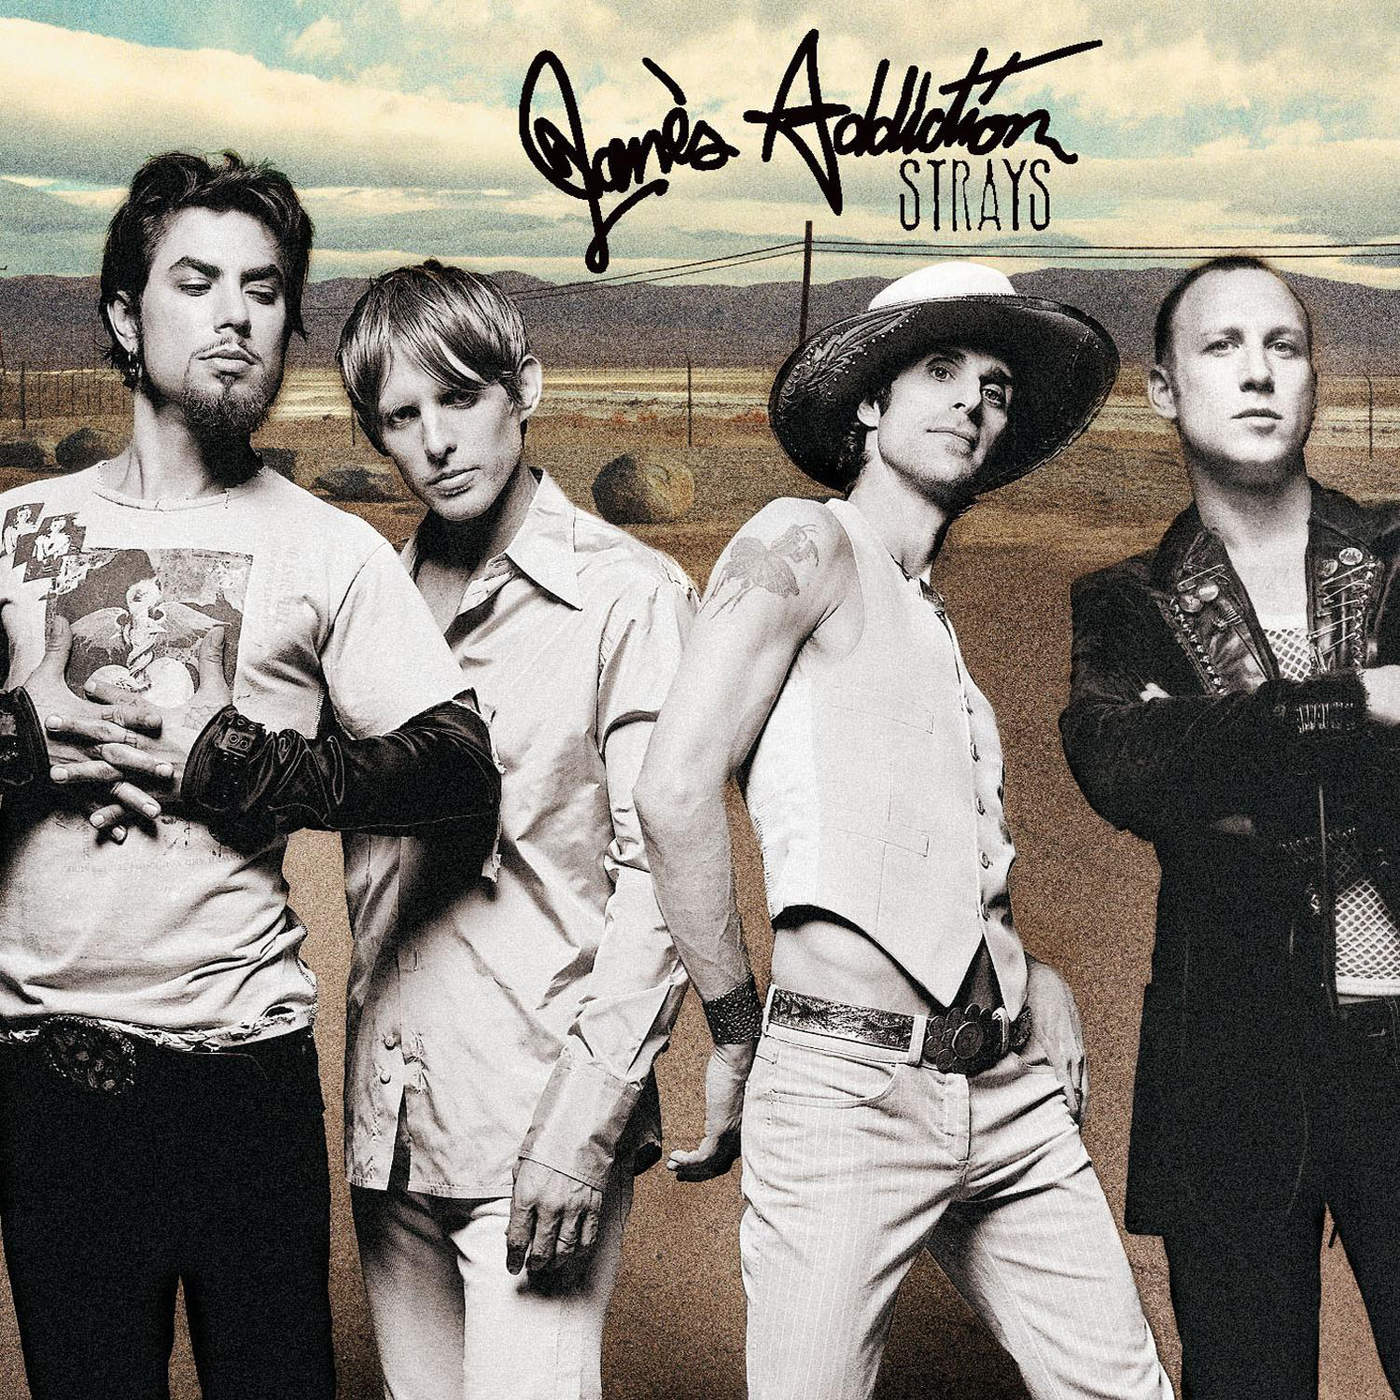 Superhero (Entourage theme) - Jane's Addiction